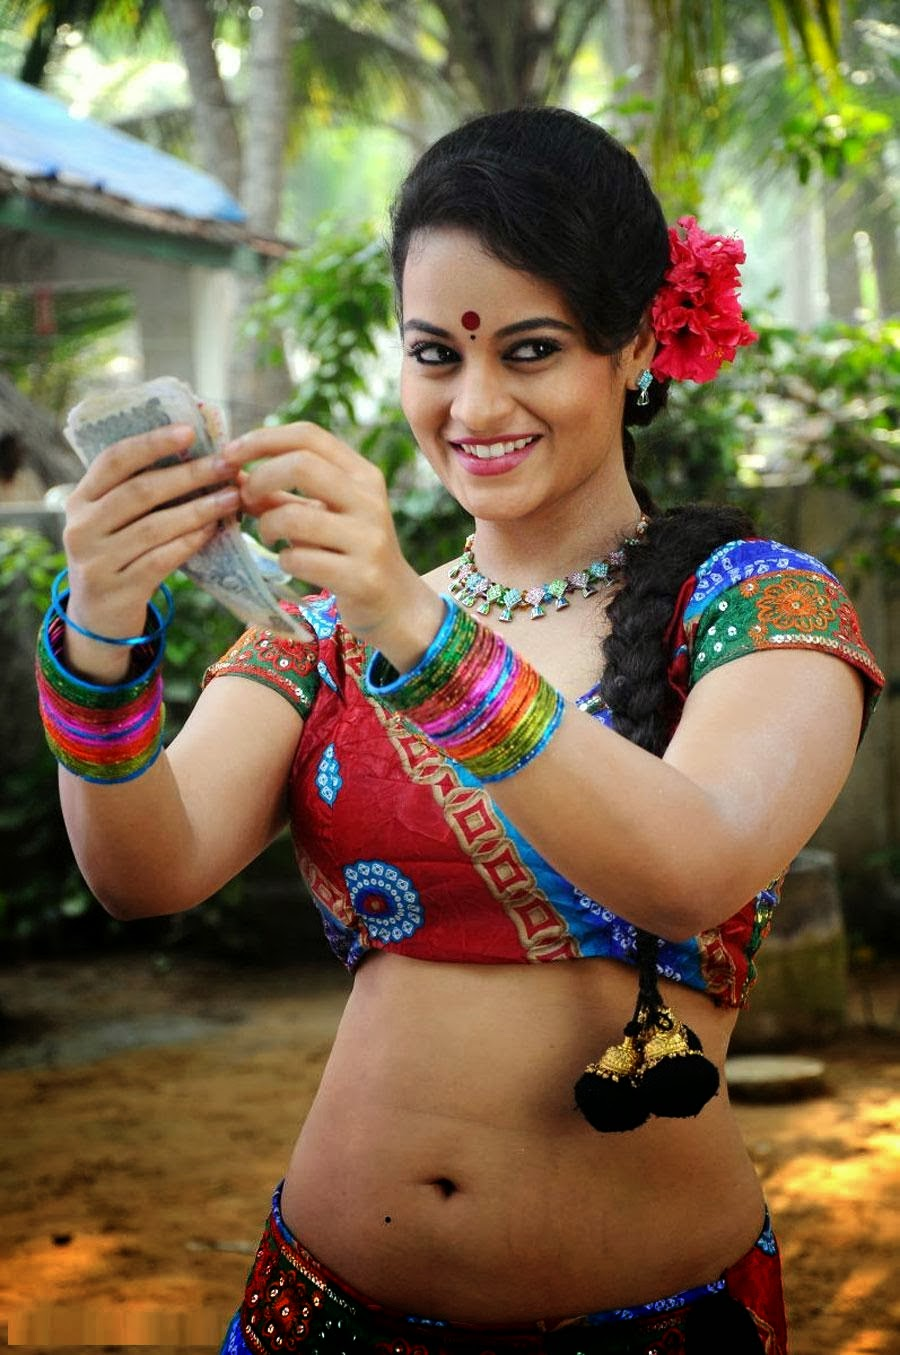 hot south indian item girls more images for hot south indian item girls hot item girls of south indian hot shower scene top 10 item girls of south cinema